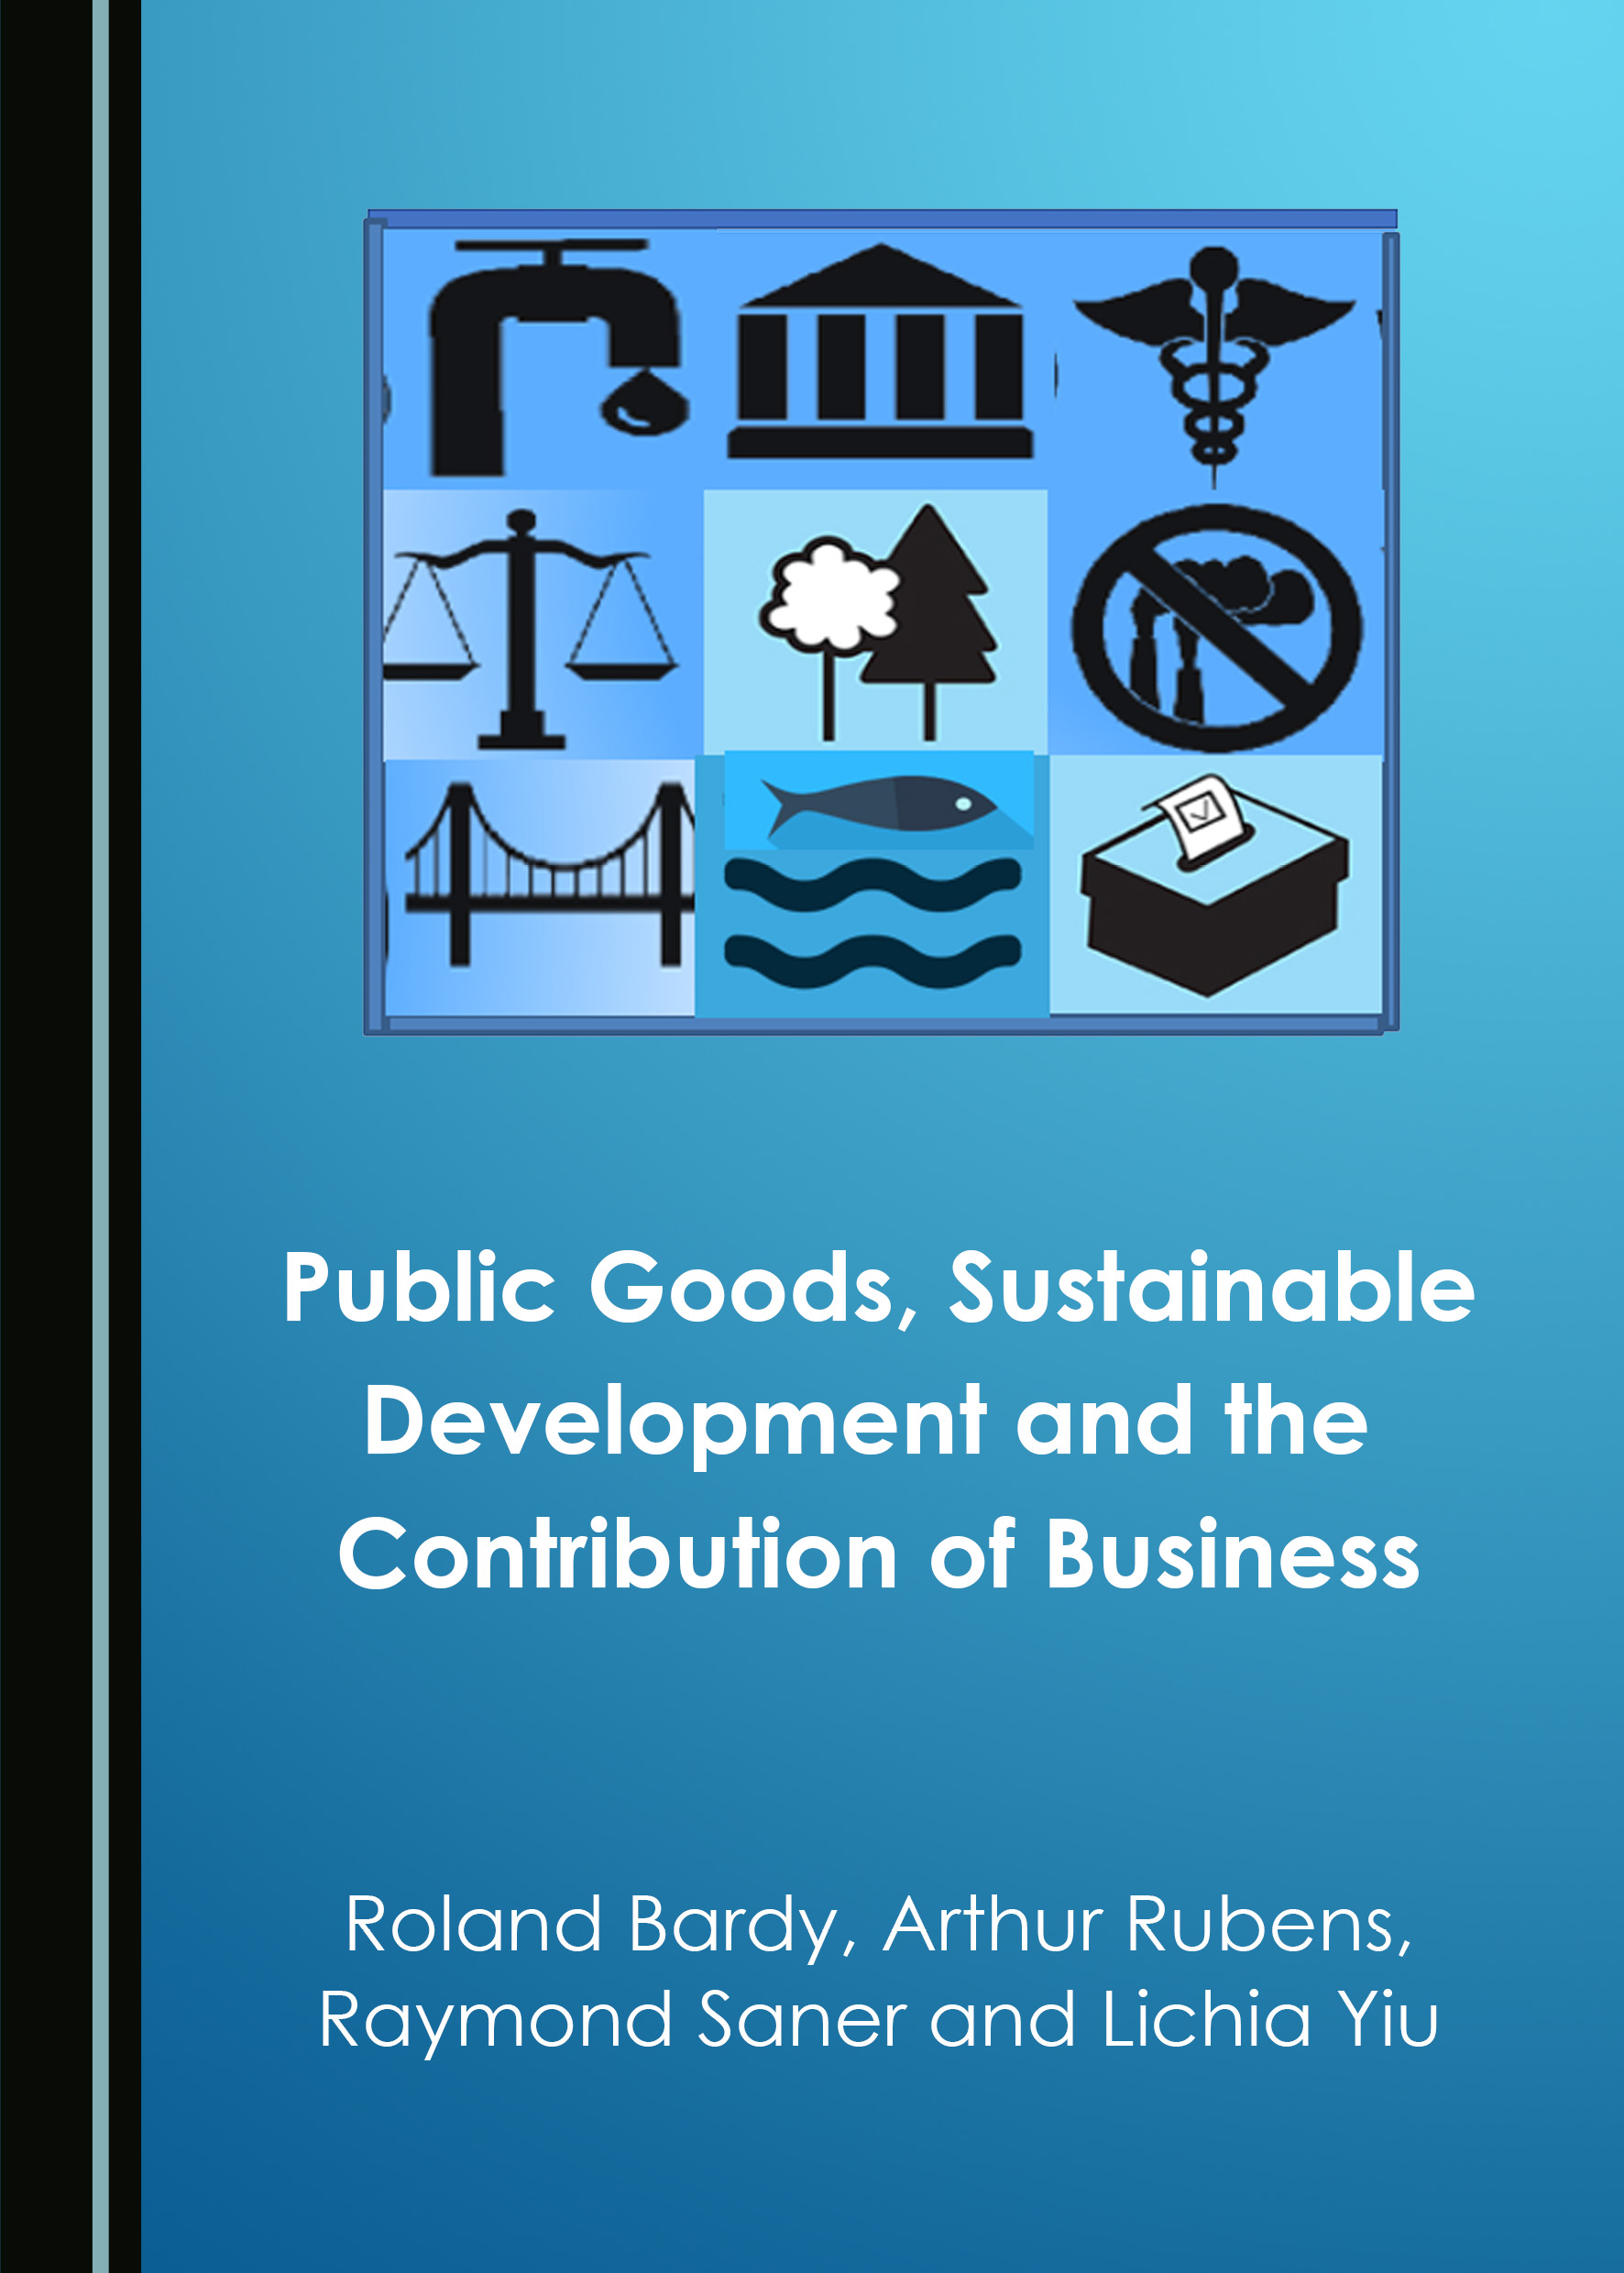 Public Goods, Sustainable Development and the Contribution of Business